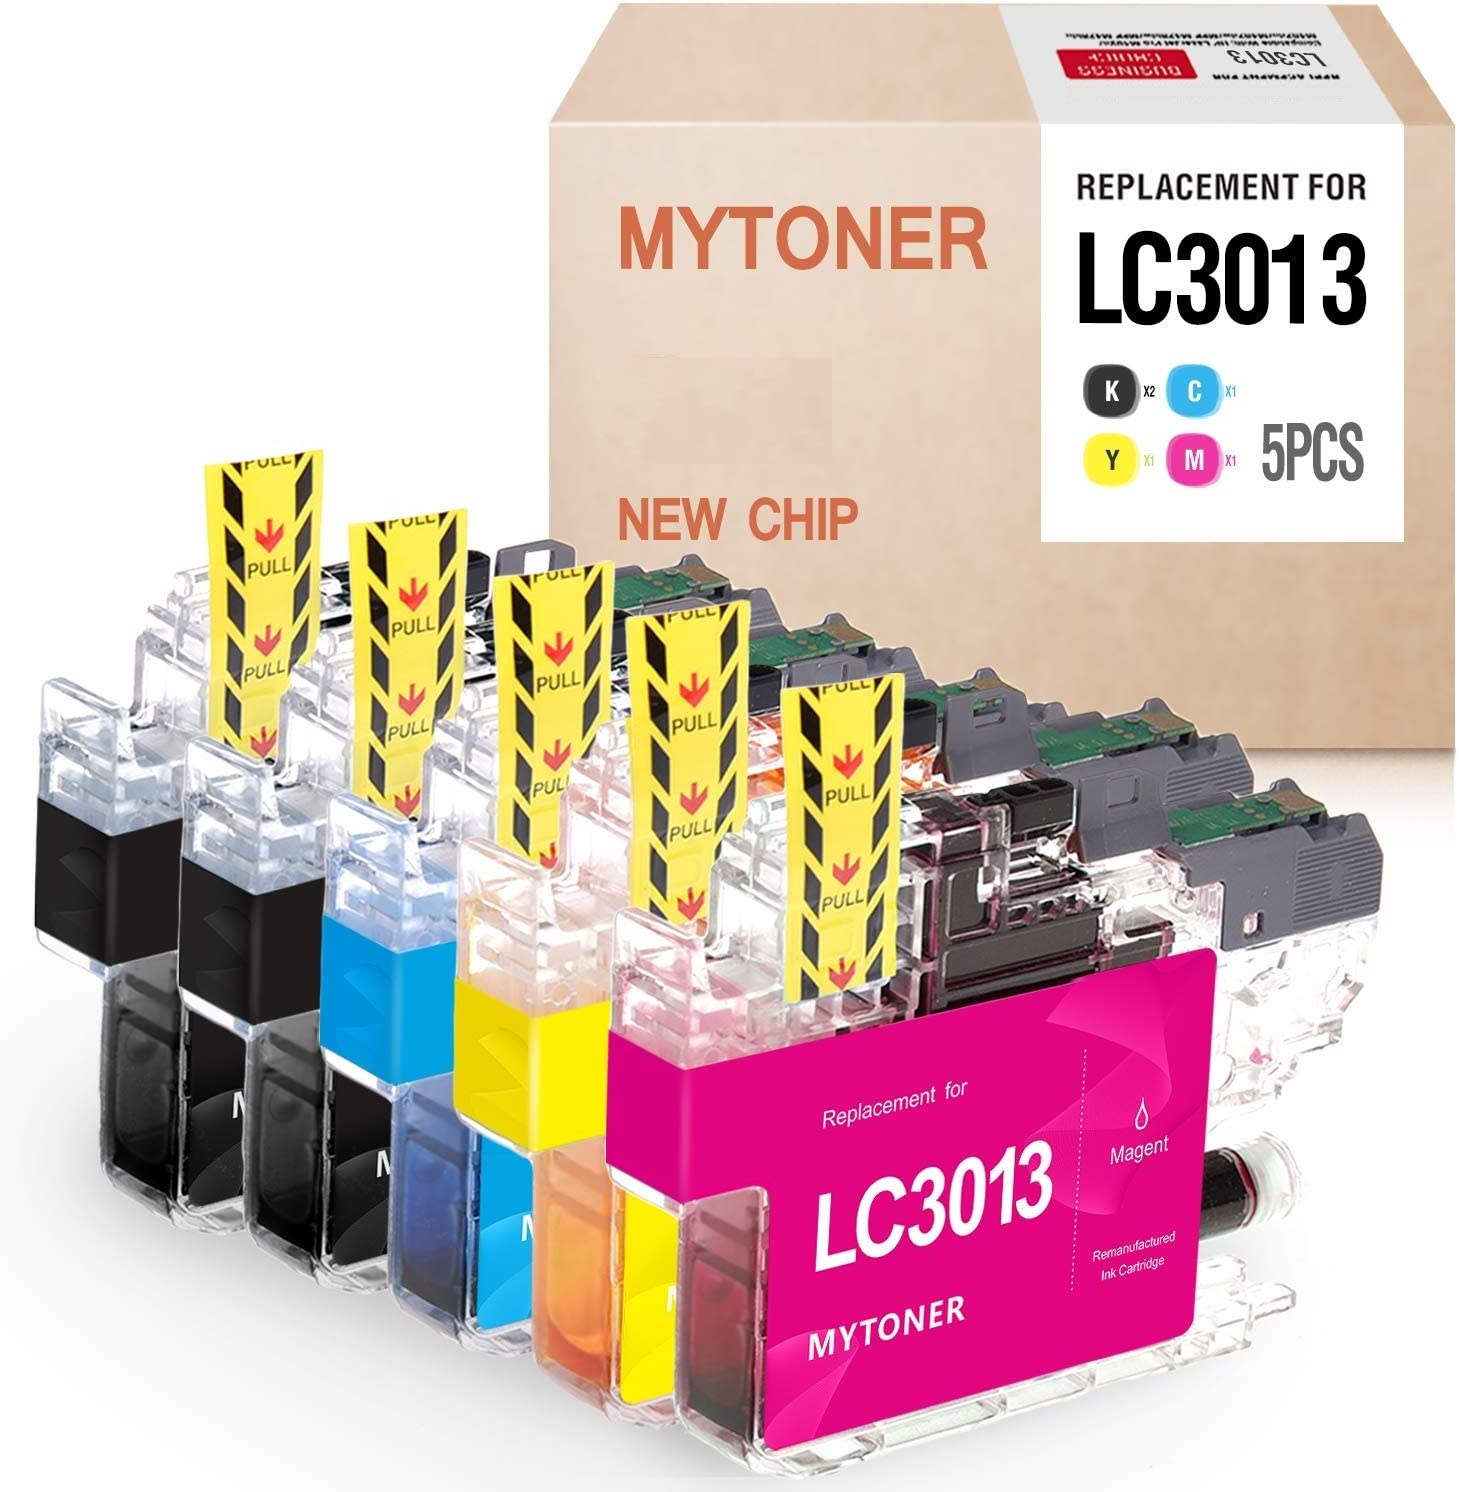 MYTONER LC3013 Compatible Ink Cartridge Replacement for Brother LC3013 LC-3013 Ink for Brother MFC-J491DW, MFC-J497DW, MFC-J690DW, MFC-J895DW Printer Ink (Black, Cyan, Magenta,Yellow, 5-Pack)